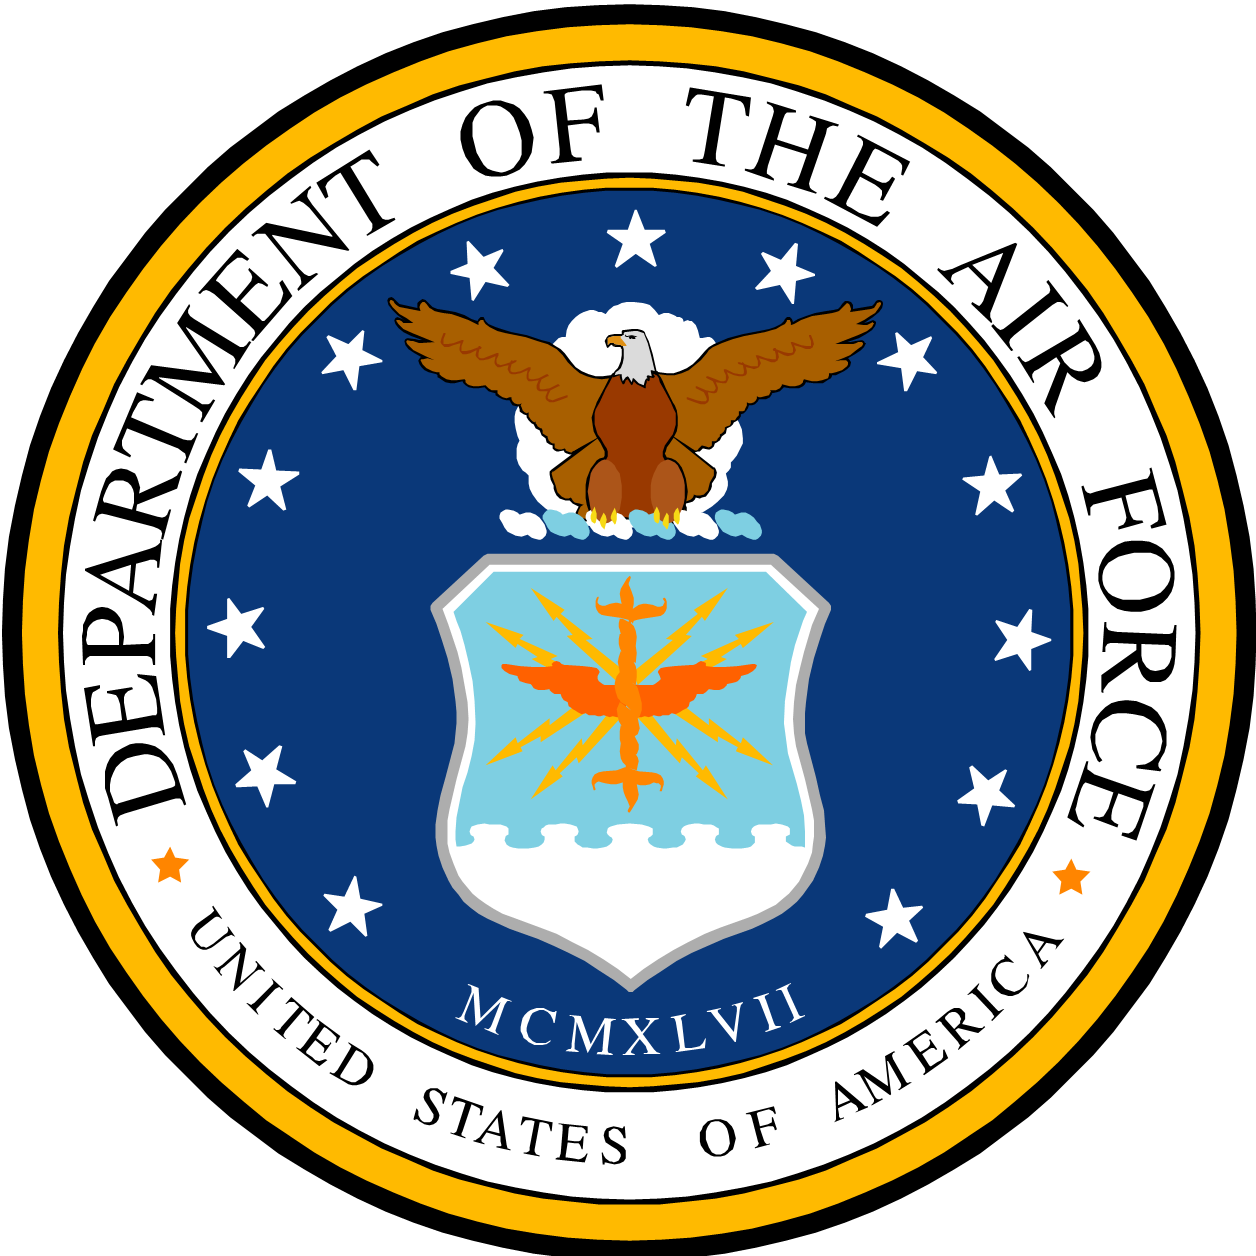 Air Force Logos Clip Art   Clipart Best